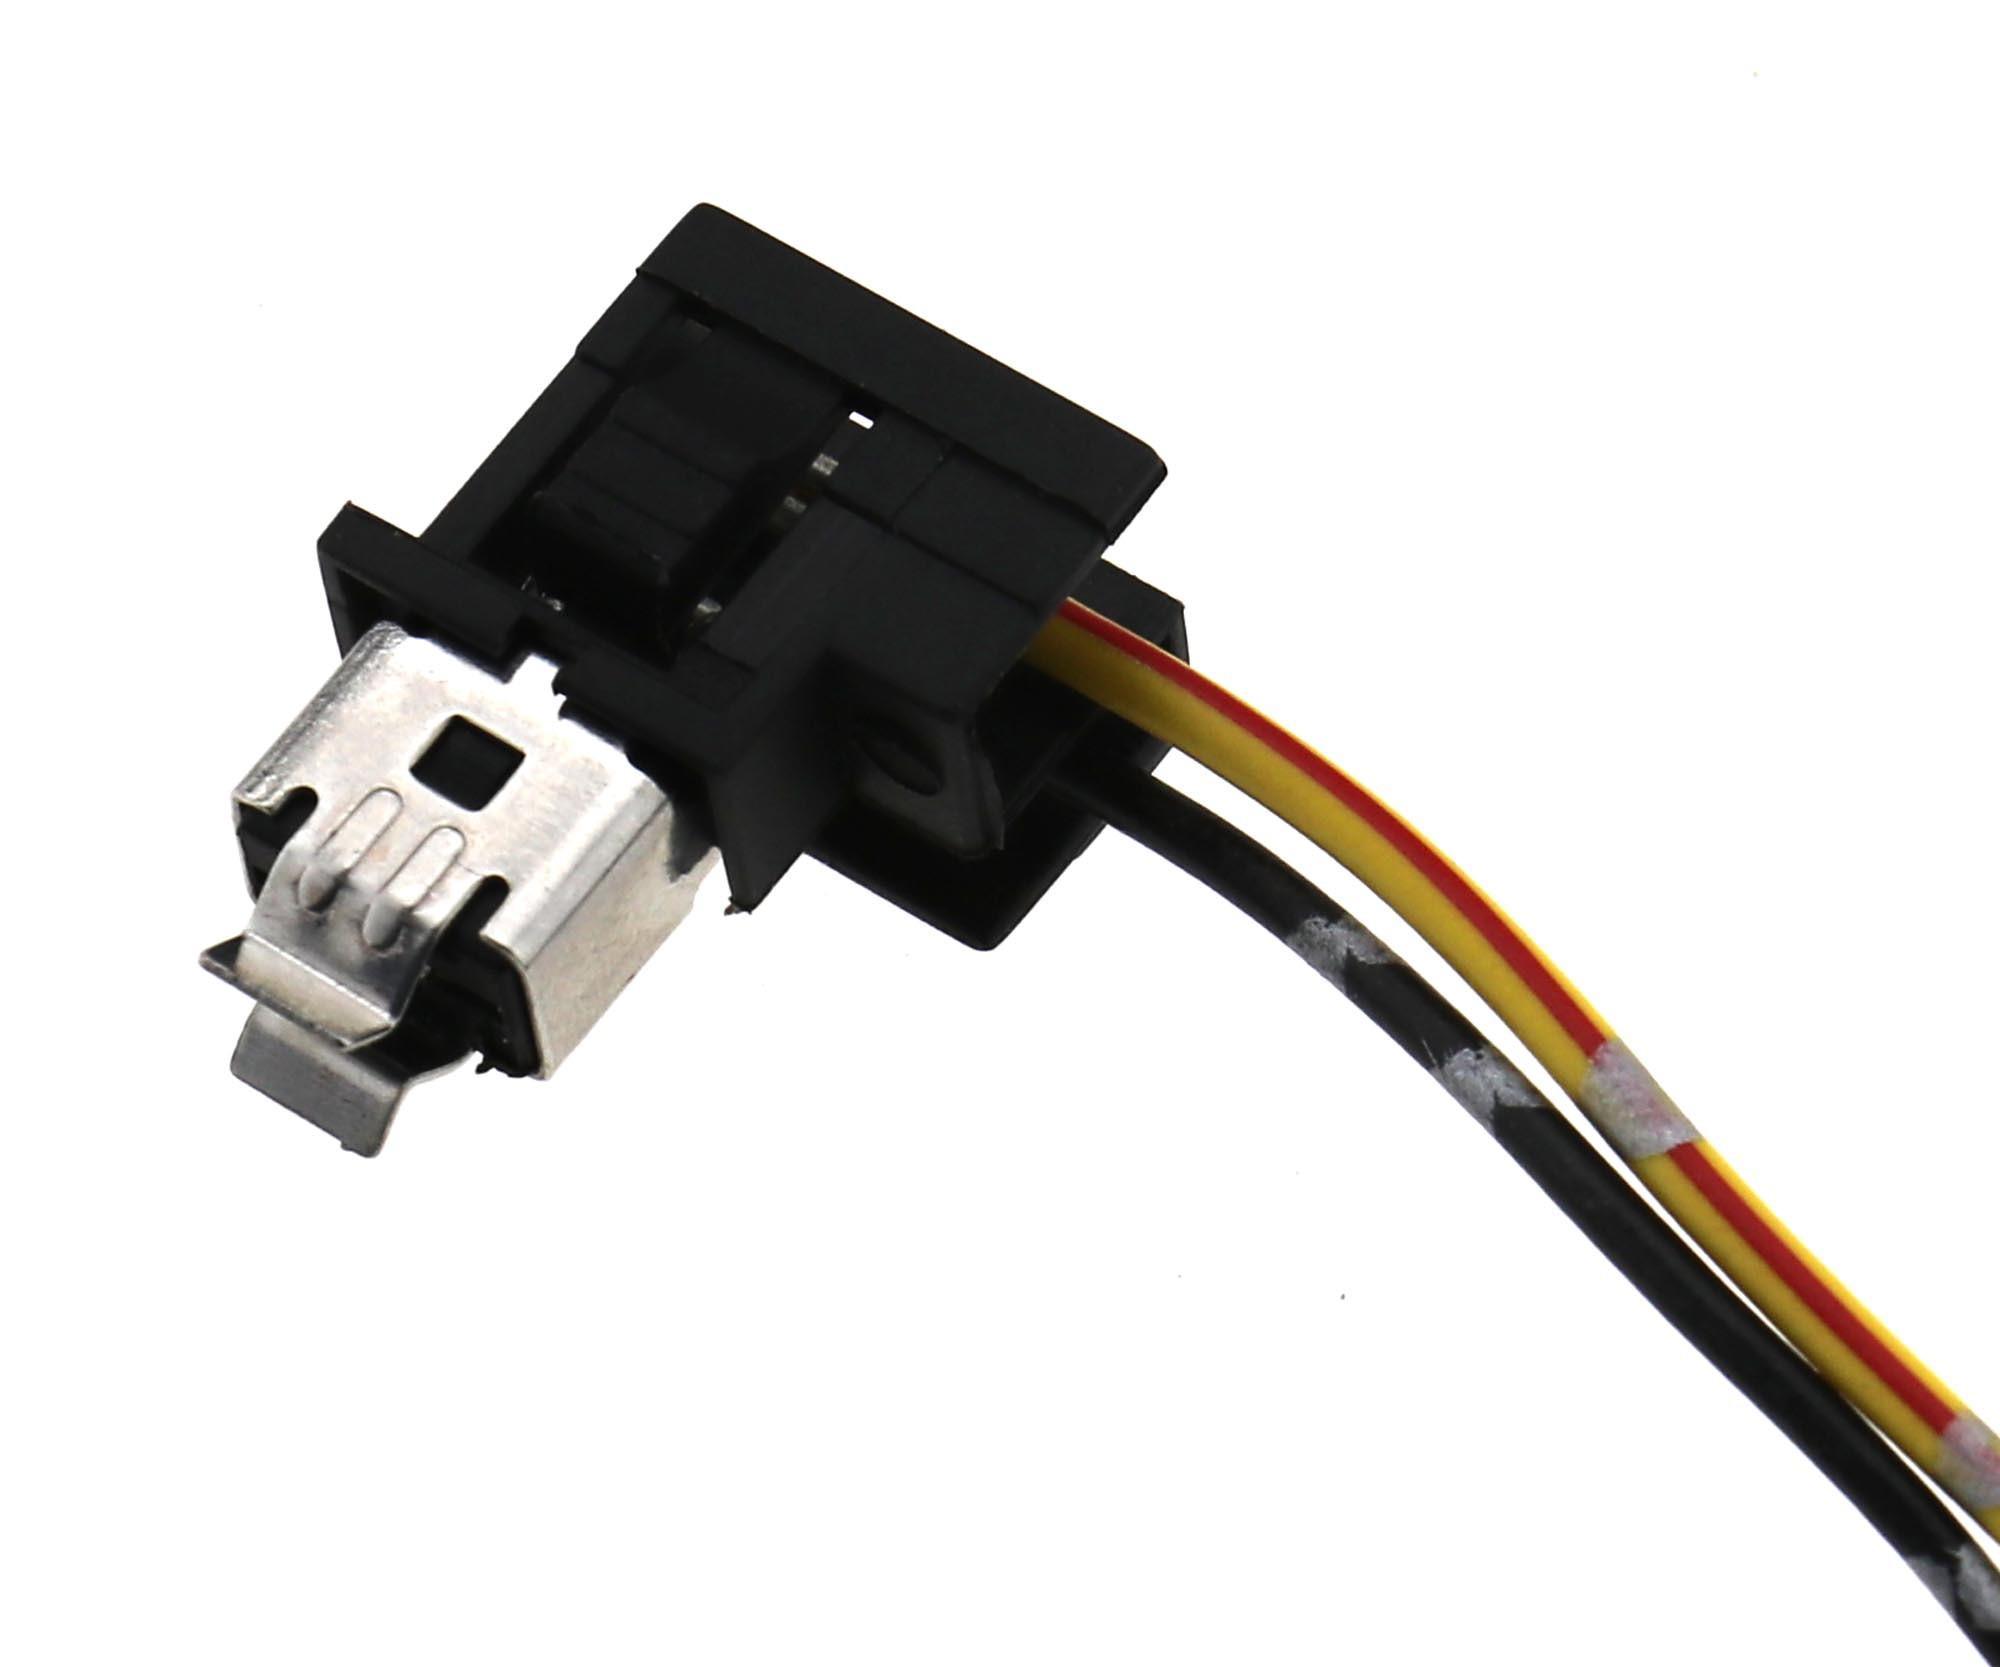 12v H1 Head Fog Lamp Light Bulb Socket Holder Wiring Connector Plug A With 2 Lamps For Auto Car